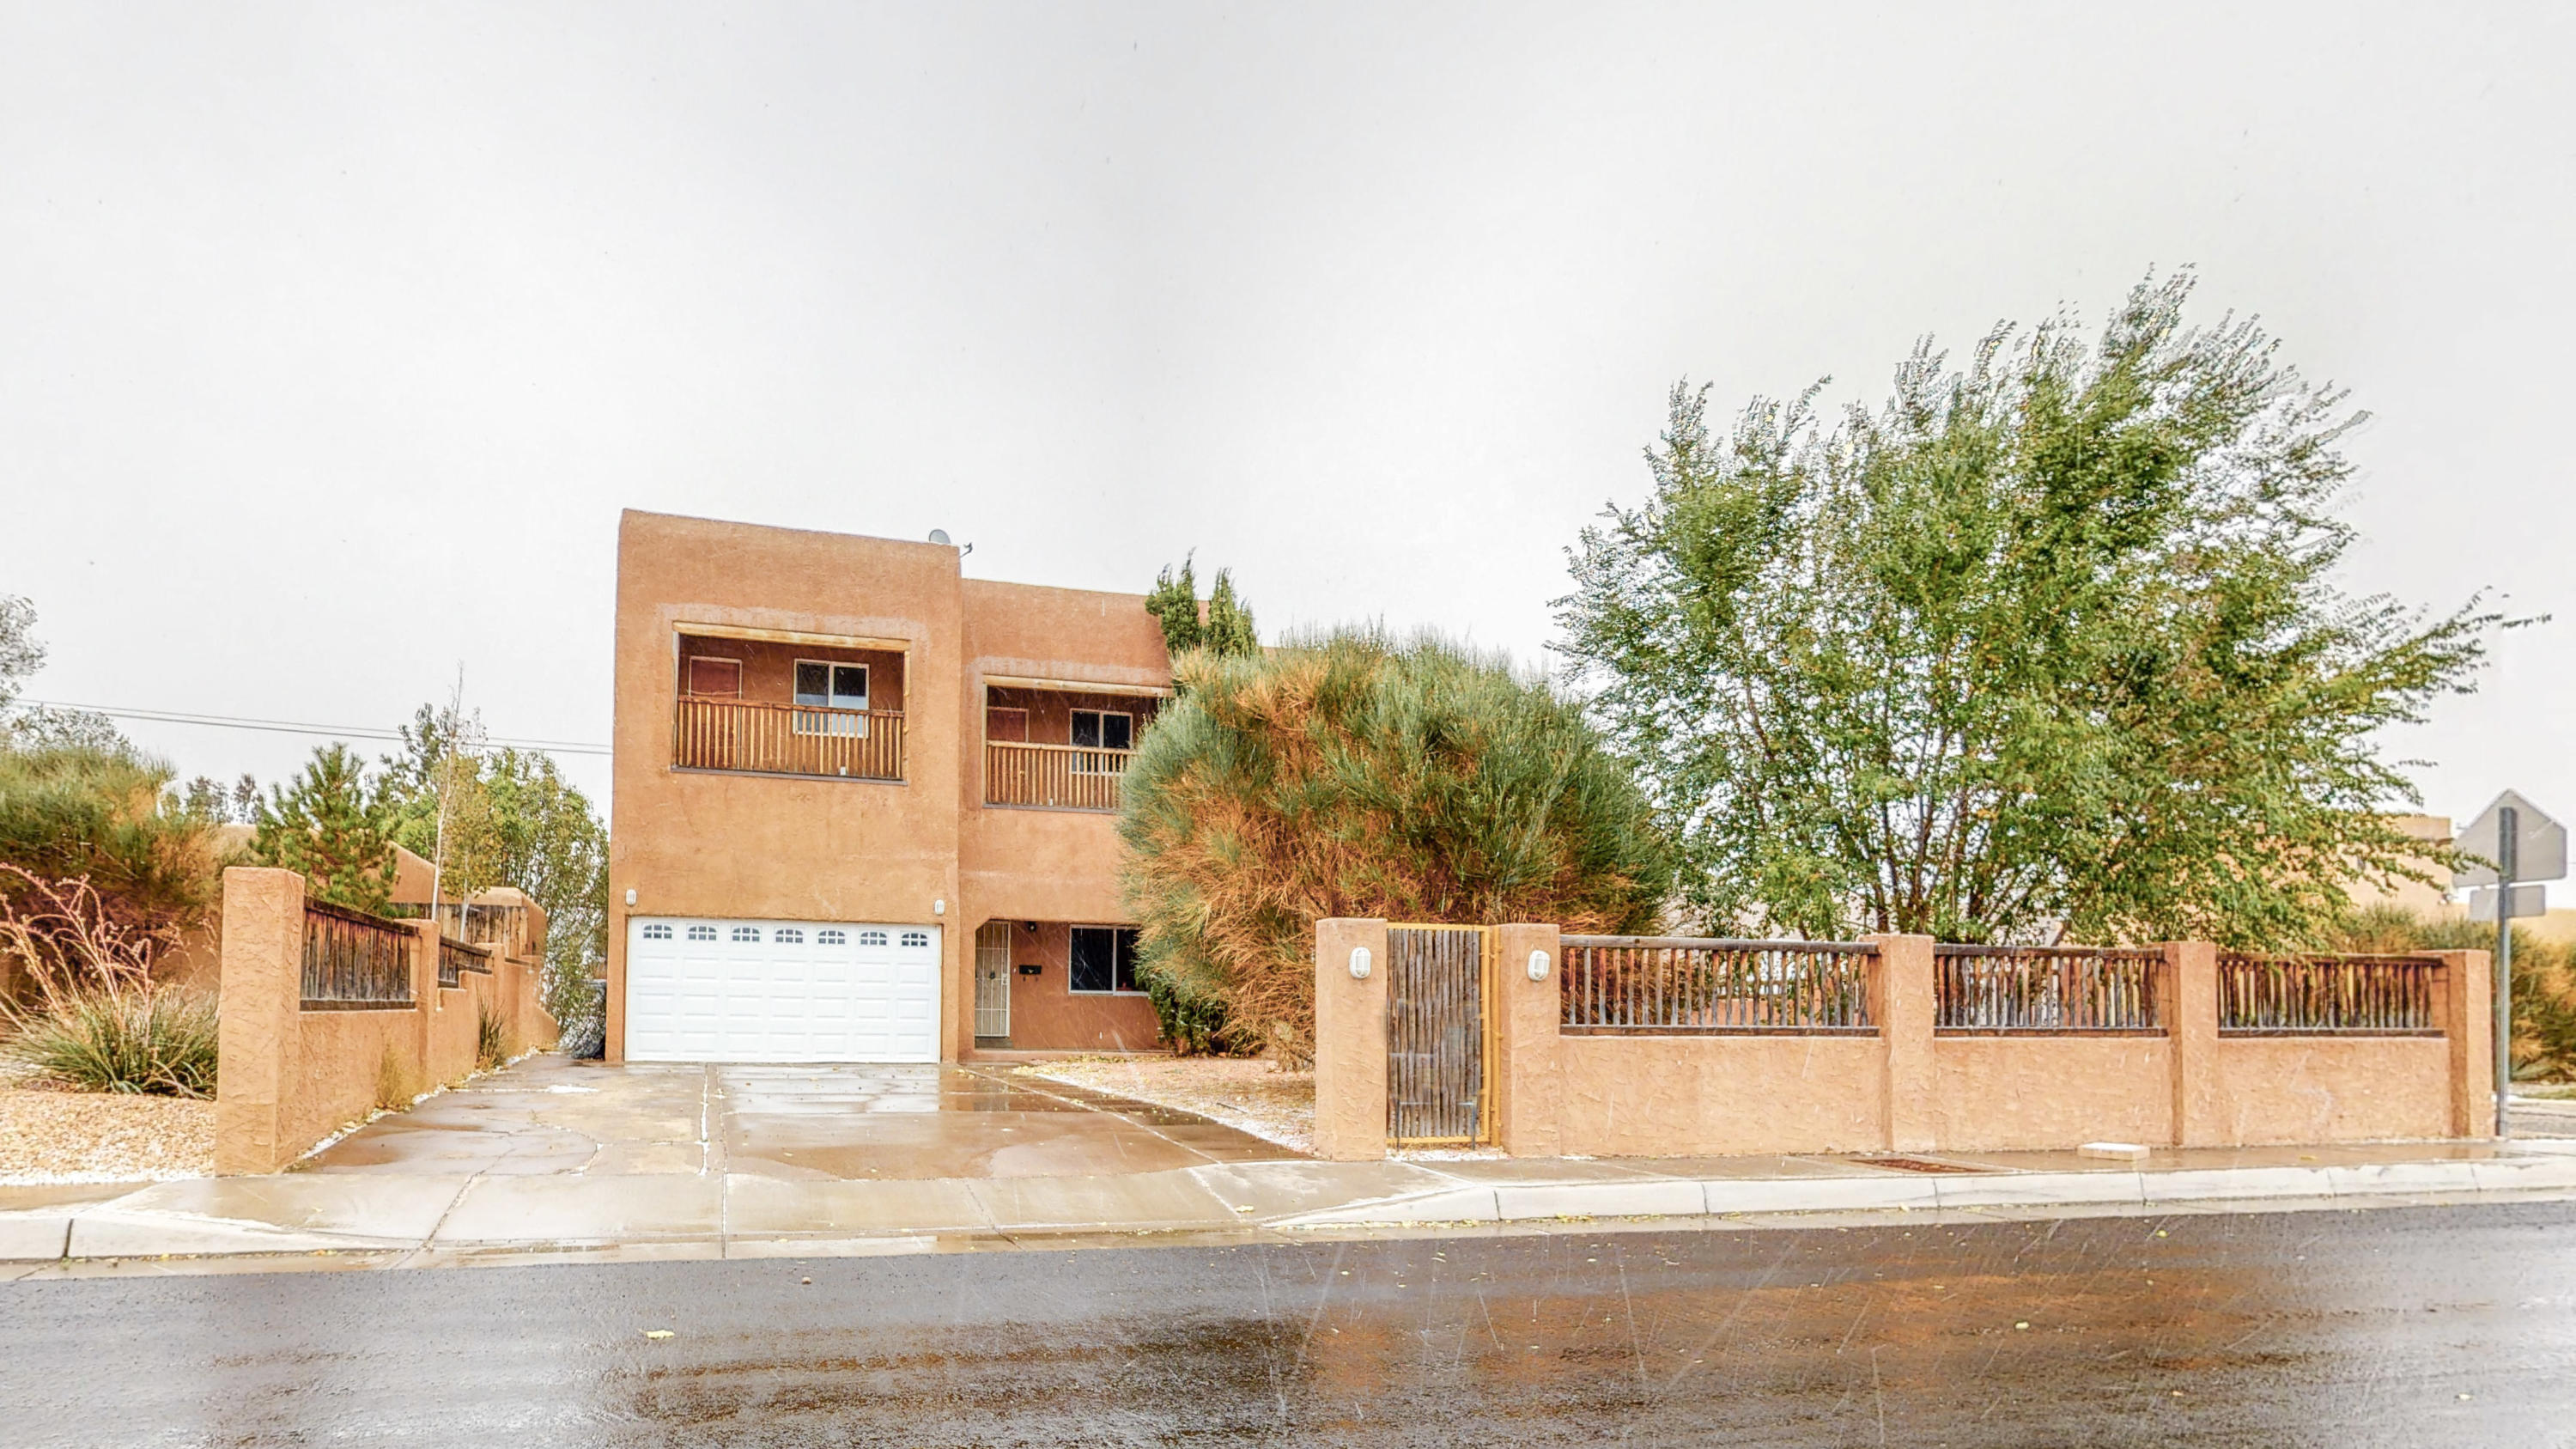 One of a kind house under $100 per square foot! Located east side of Ridgecrest Addition. 6 bedrooms! 4 full bathrooms! 3692 square feet. Multiple master bedrooms. Multiple living / family rooms. Great view from upper decks. Needs a little TLC but can be made into wonderful multi generational family home. Has been a rental the last decade.